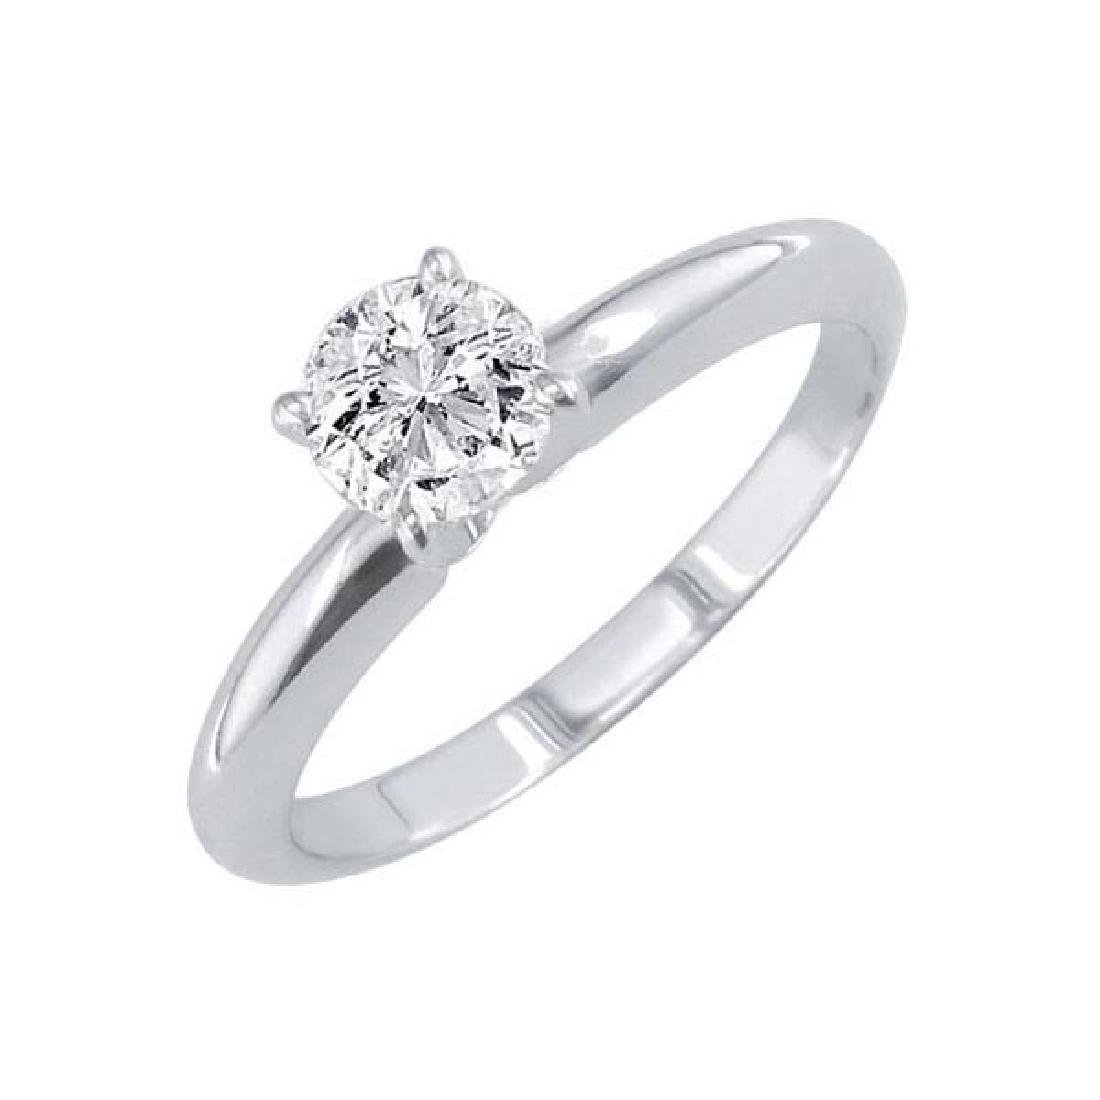 Certified 0.52 CTW Round Diamond Solitaire 14k Ring D/S